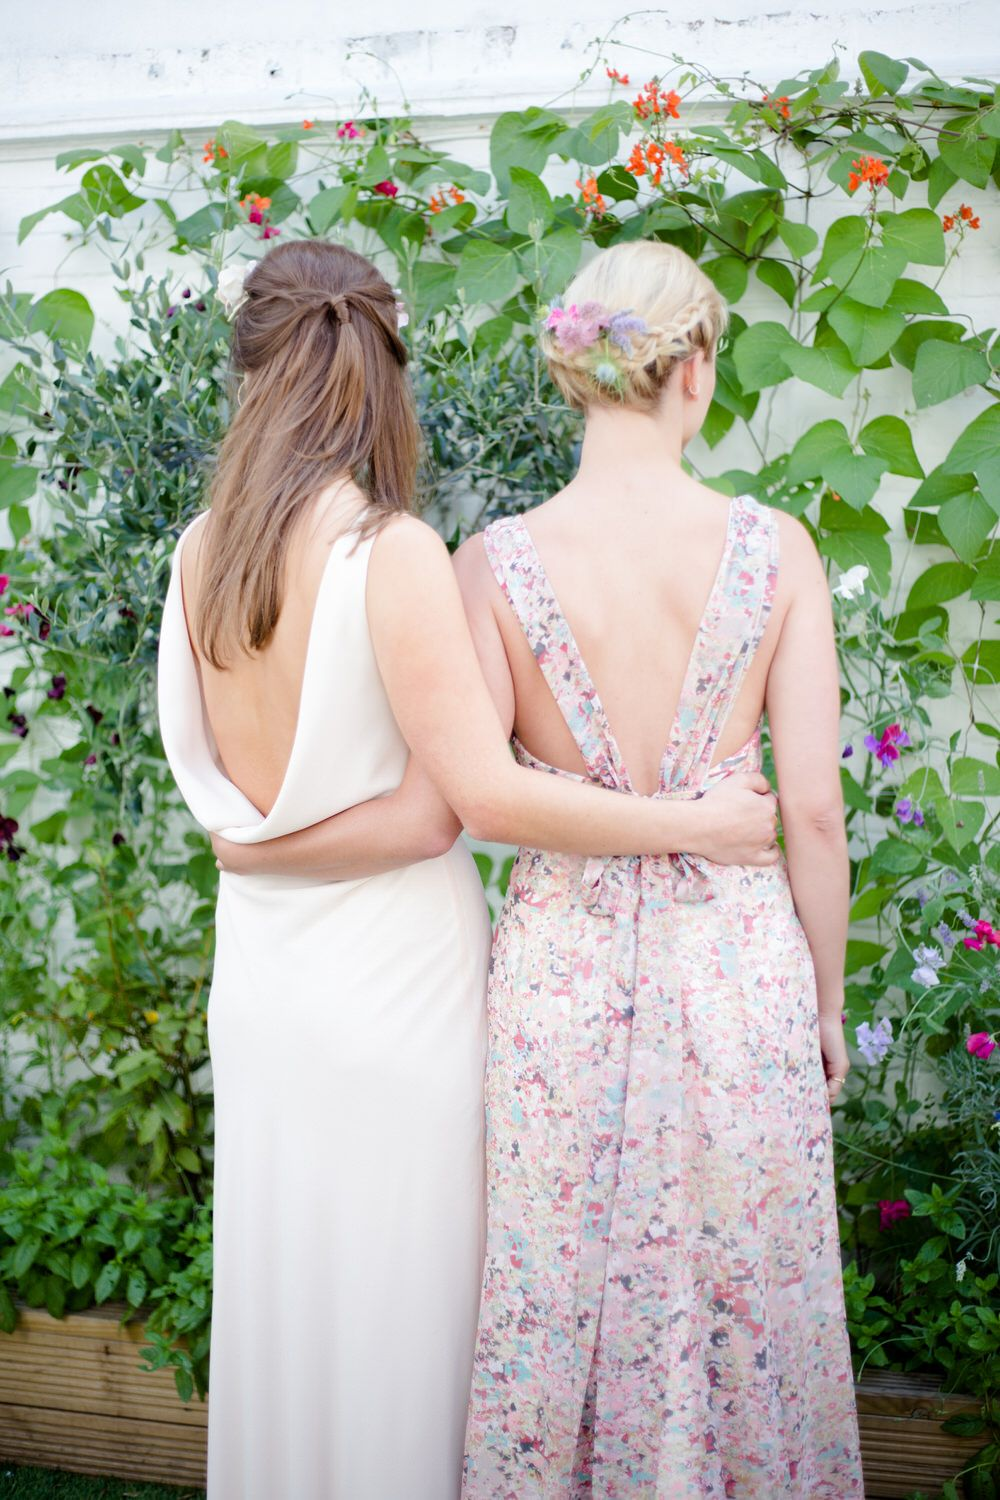 Low Back Pastel Made To Order Bridesmaids Dresses From Award Winning Bridesmaid Dress Retailer Maids